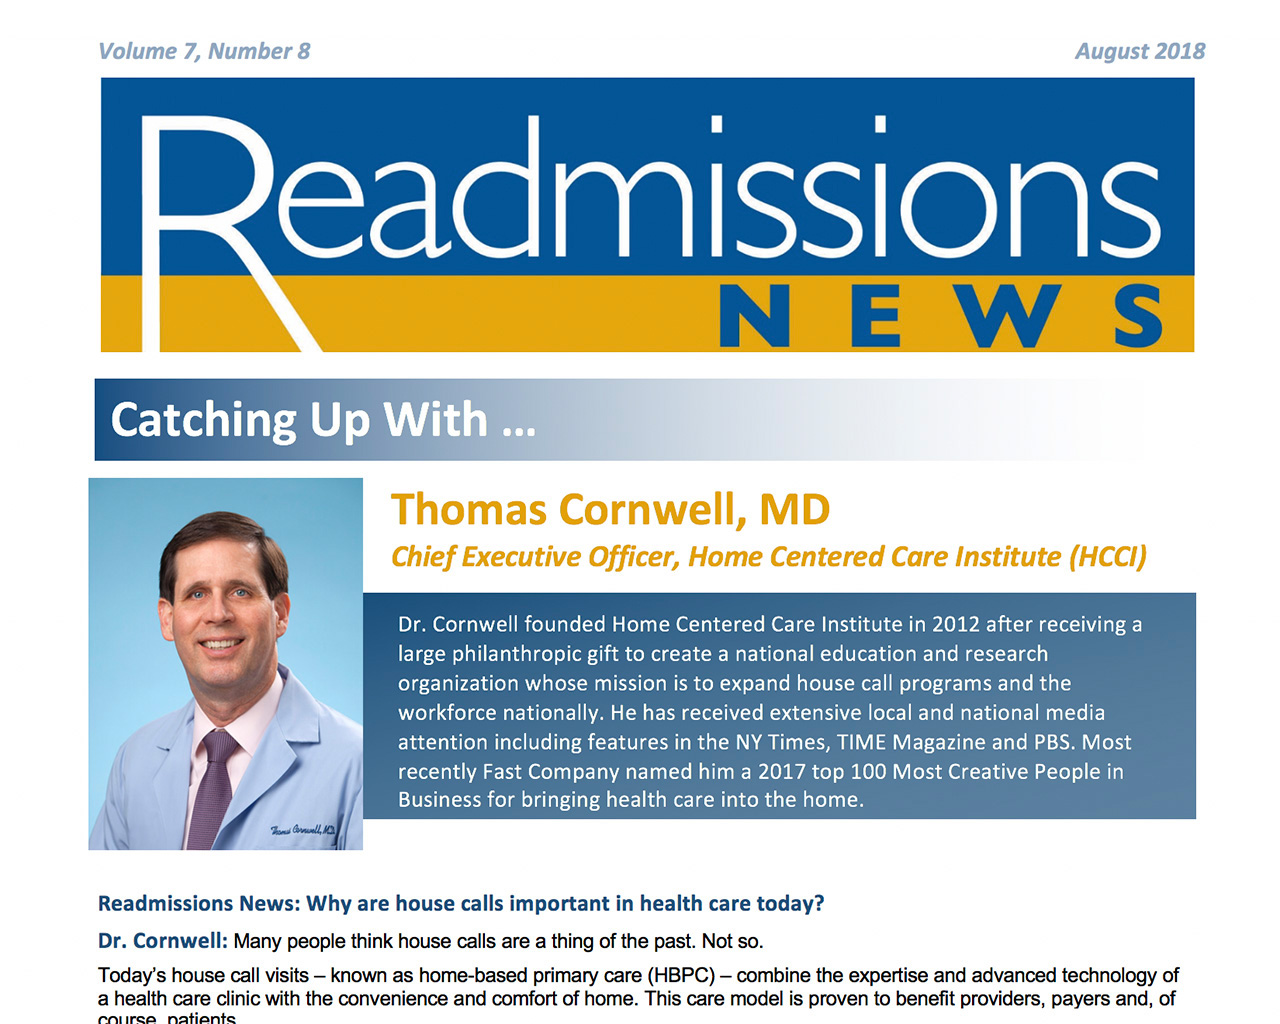 Readmission News Article